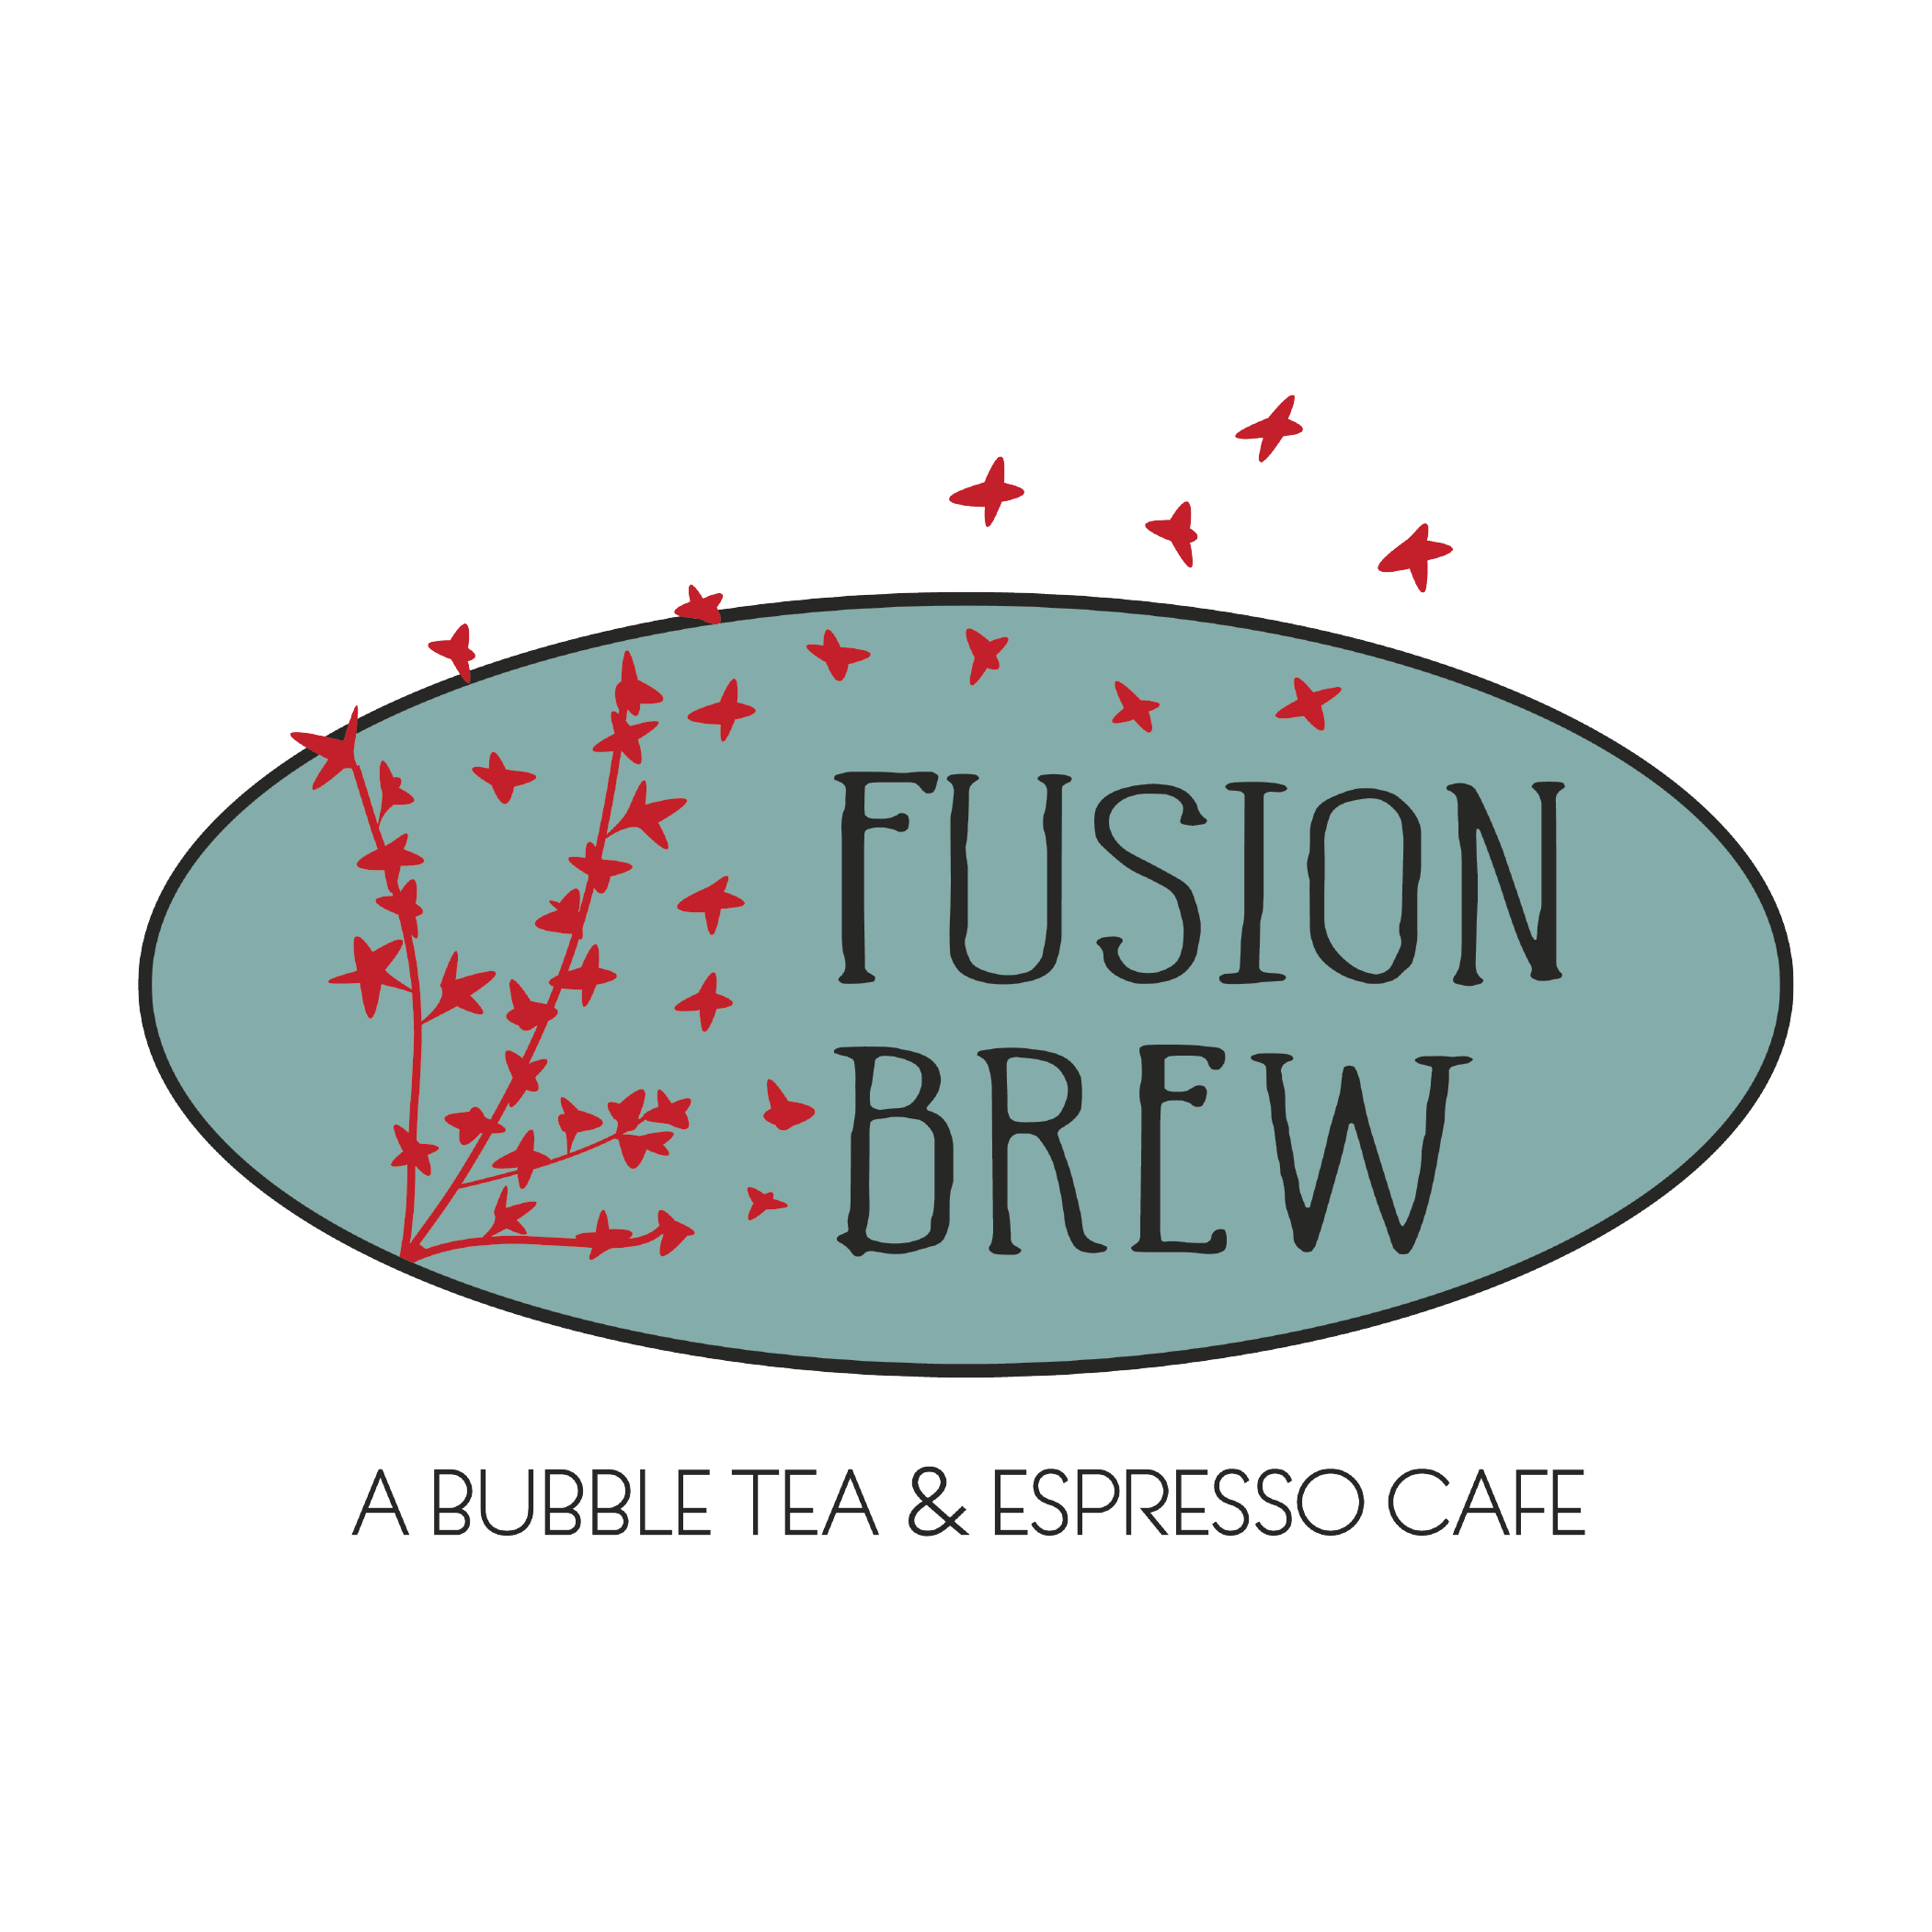 Fusion Brew A Bubble Tea & Espresso Cafe